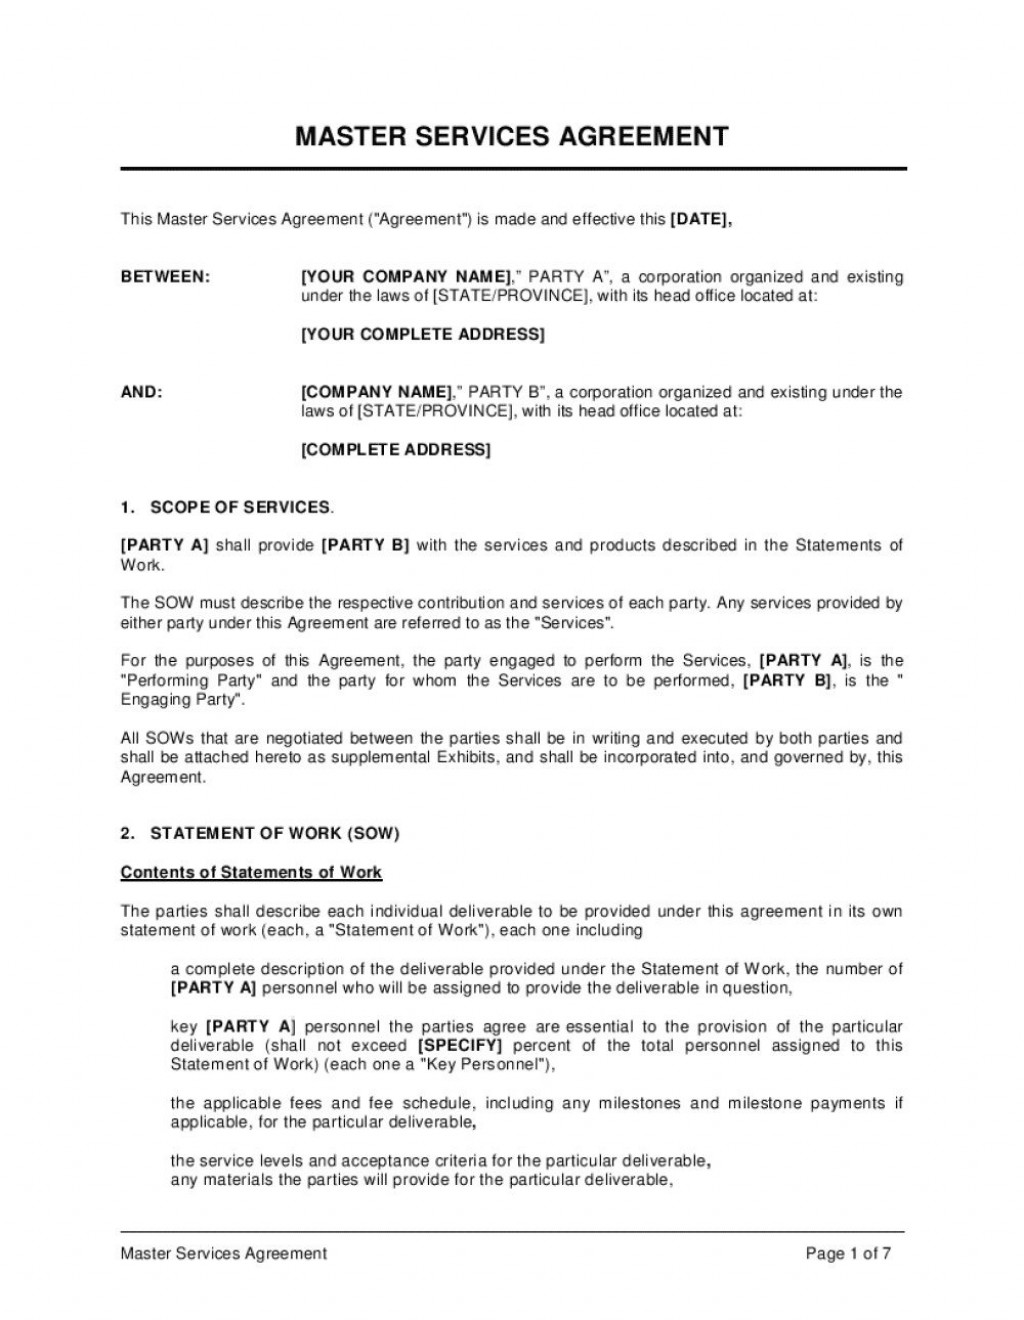 005 Excellent Master Service Agreement Template Image  Free AustraliaLarge